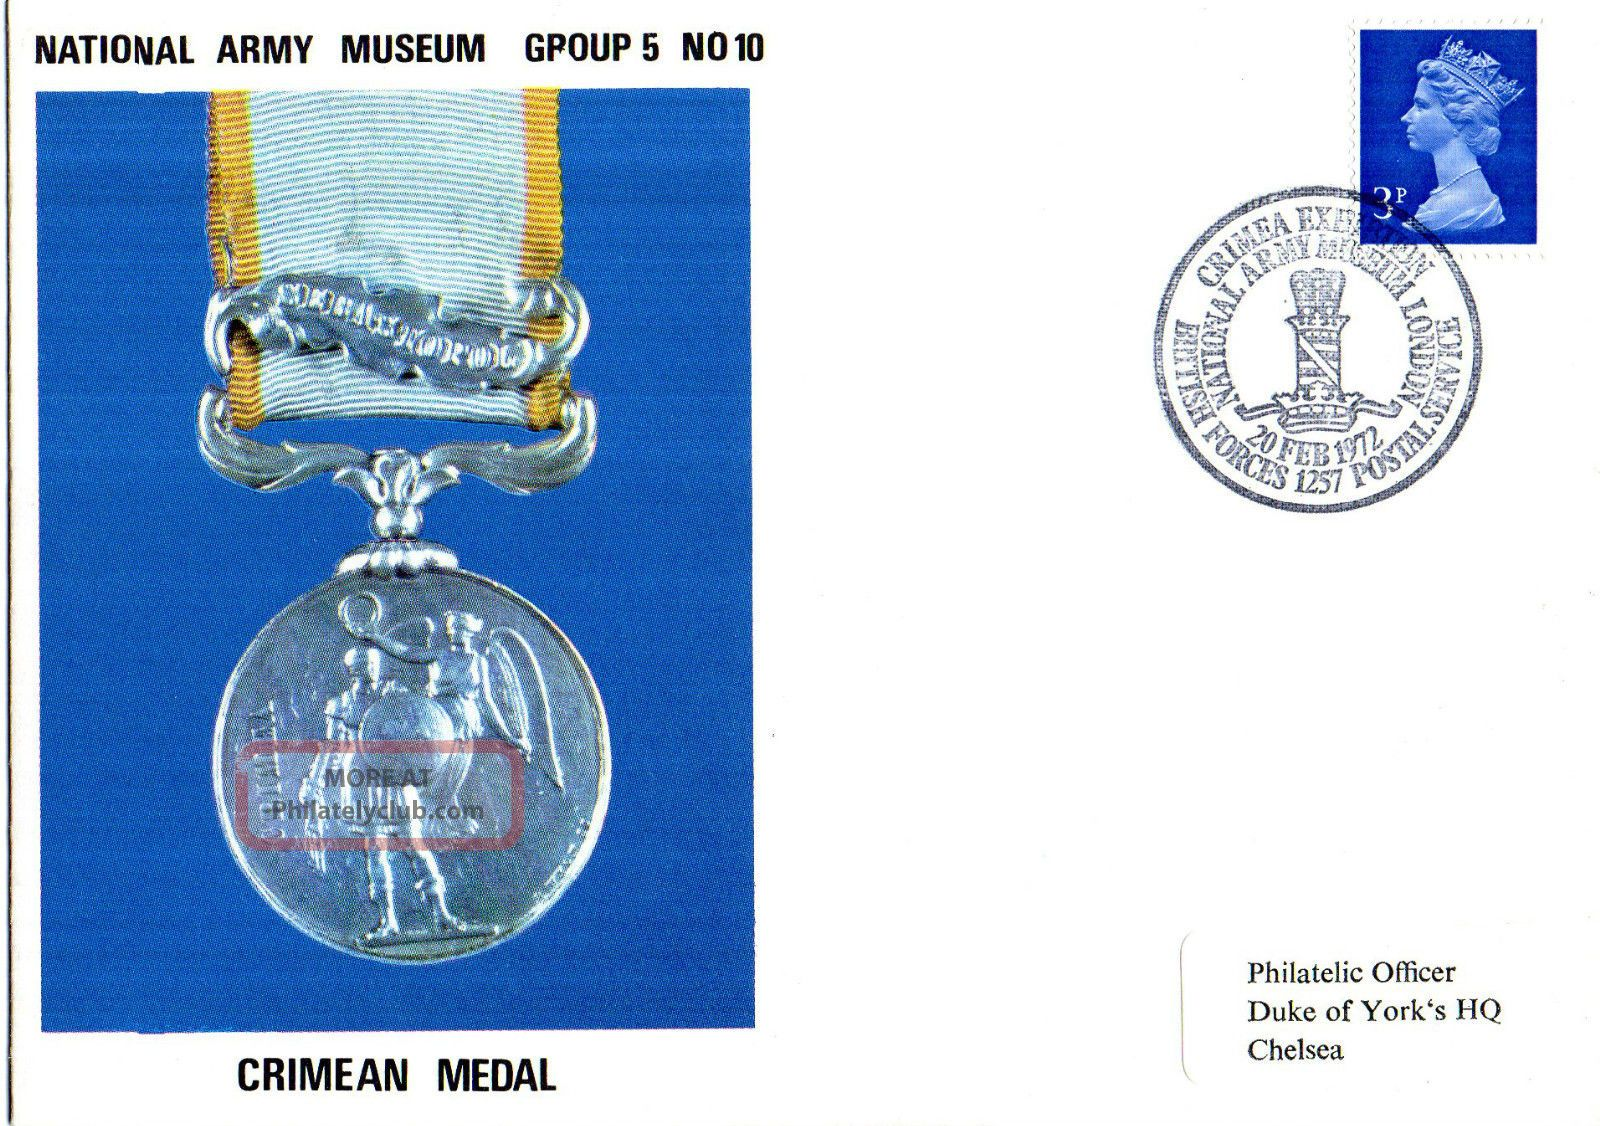 1972 Crimea Medal 5/10 Army Museum Commemorative Cover Shs Topical Stamps photo